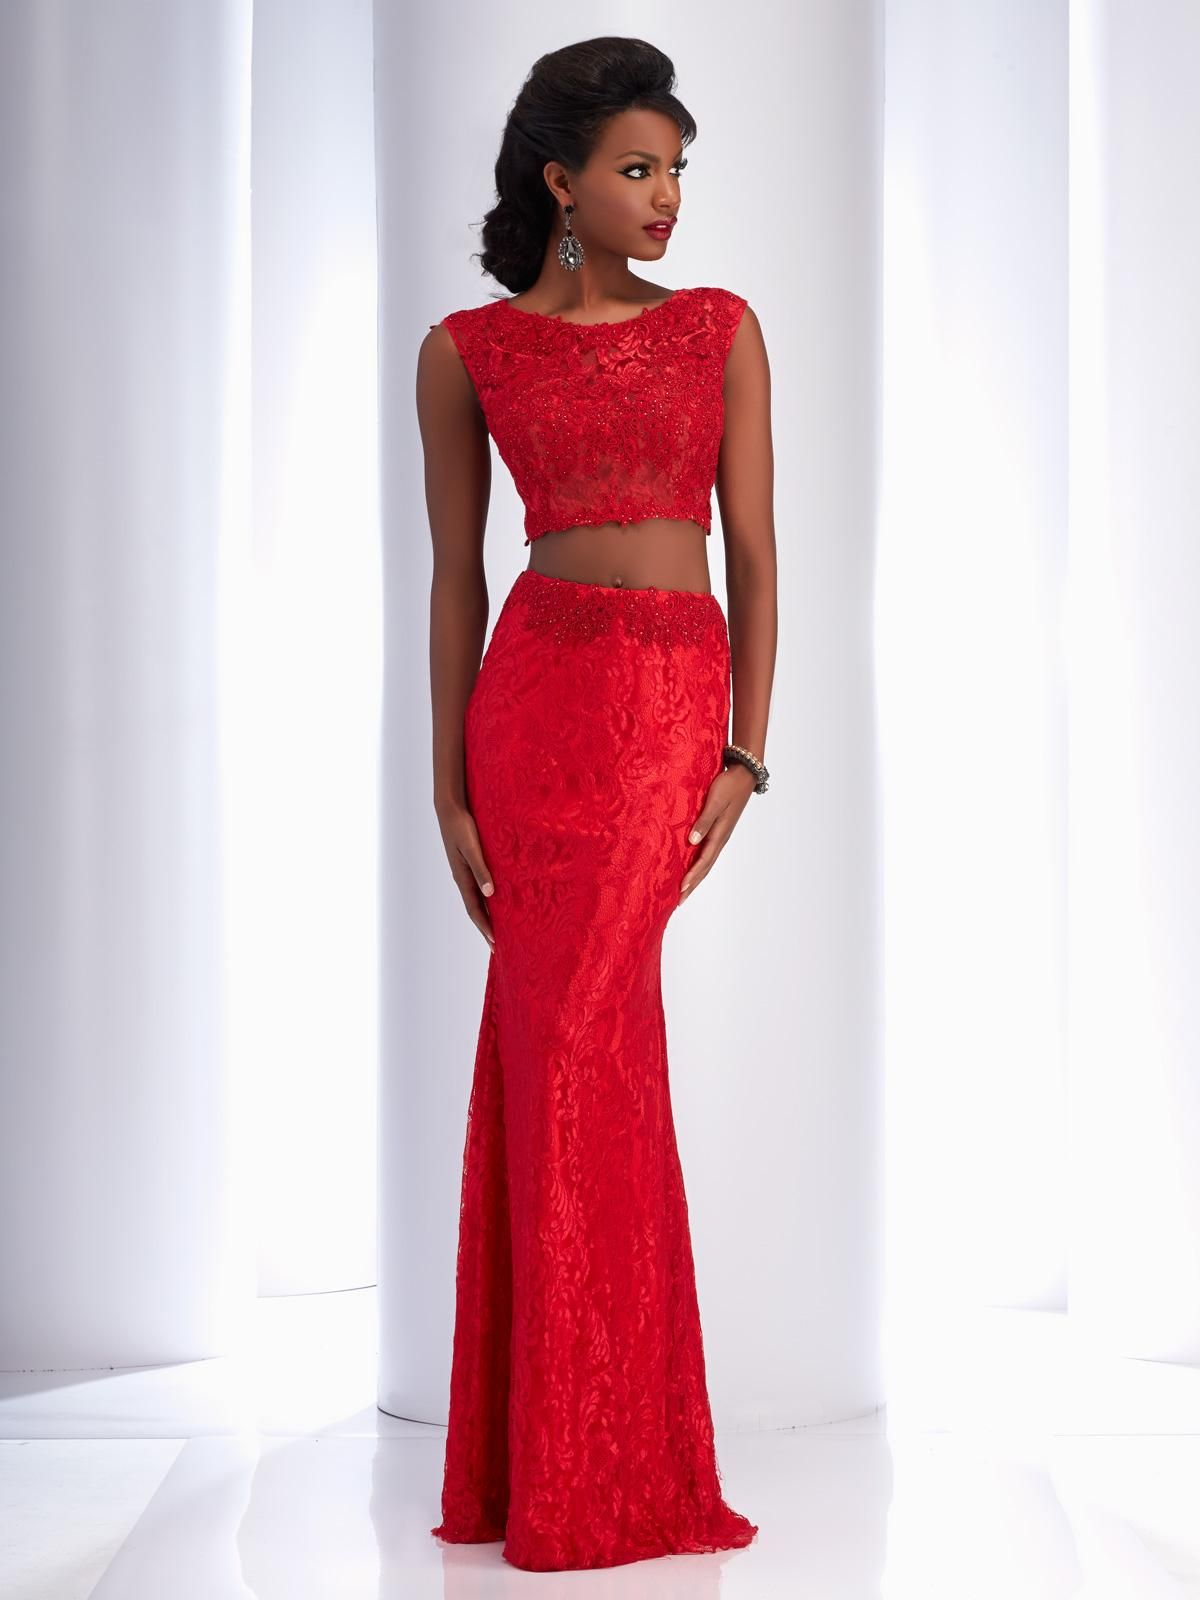 5fc1c1a7a6 Clarisse Simple Two Piece Lace Dress Style 2716. Find this simple lace two  piece dress with a cap sleeve top and keyhole open back by clicking the  where to ...